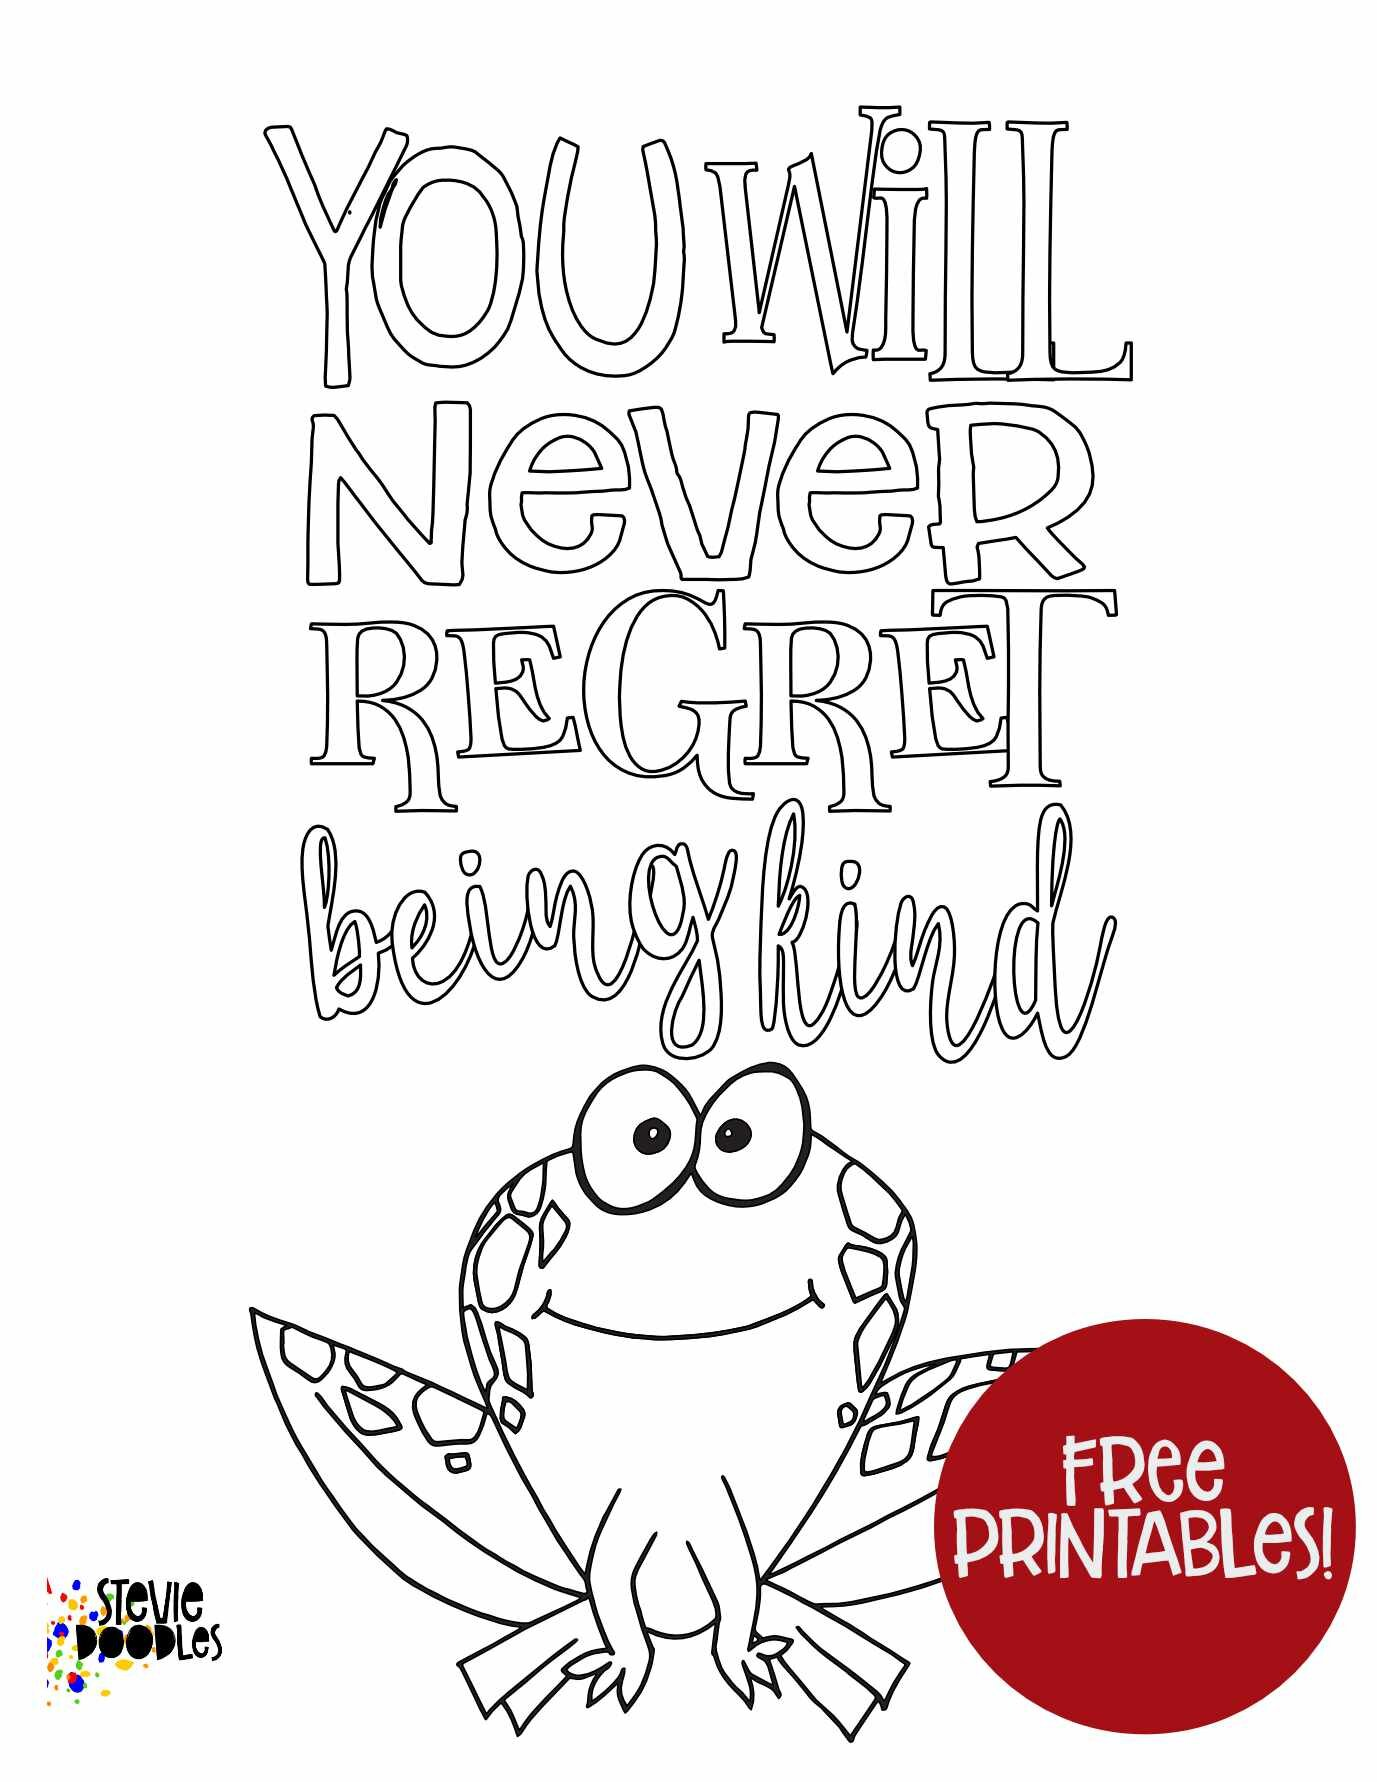 Over 1000 free coloring pages at Stevie DoodlesYou Will Never Regret Being Kind - Frog- Free Coloring Page Inspiring quote free coloring pages